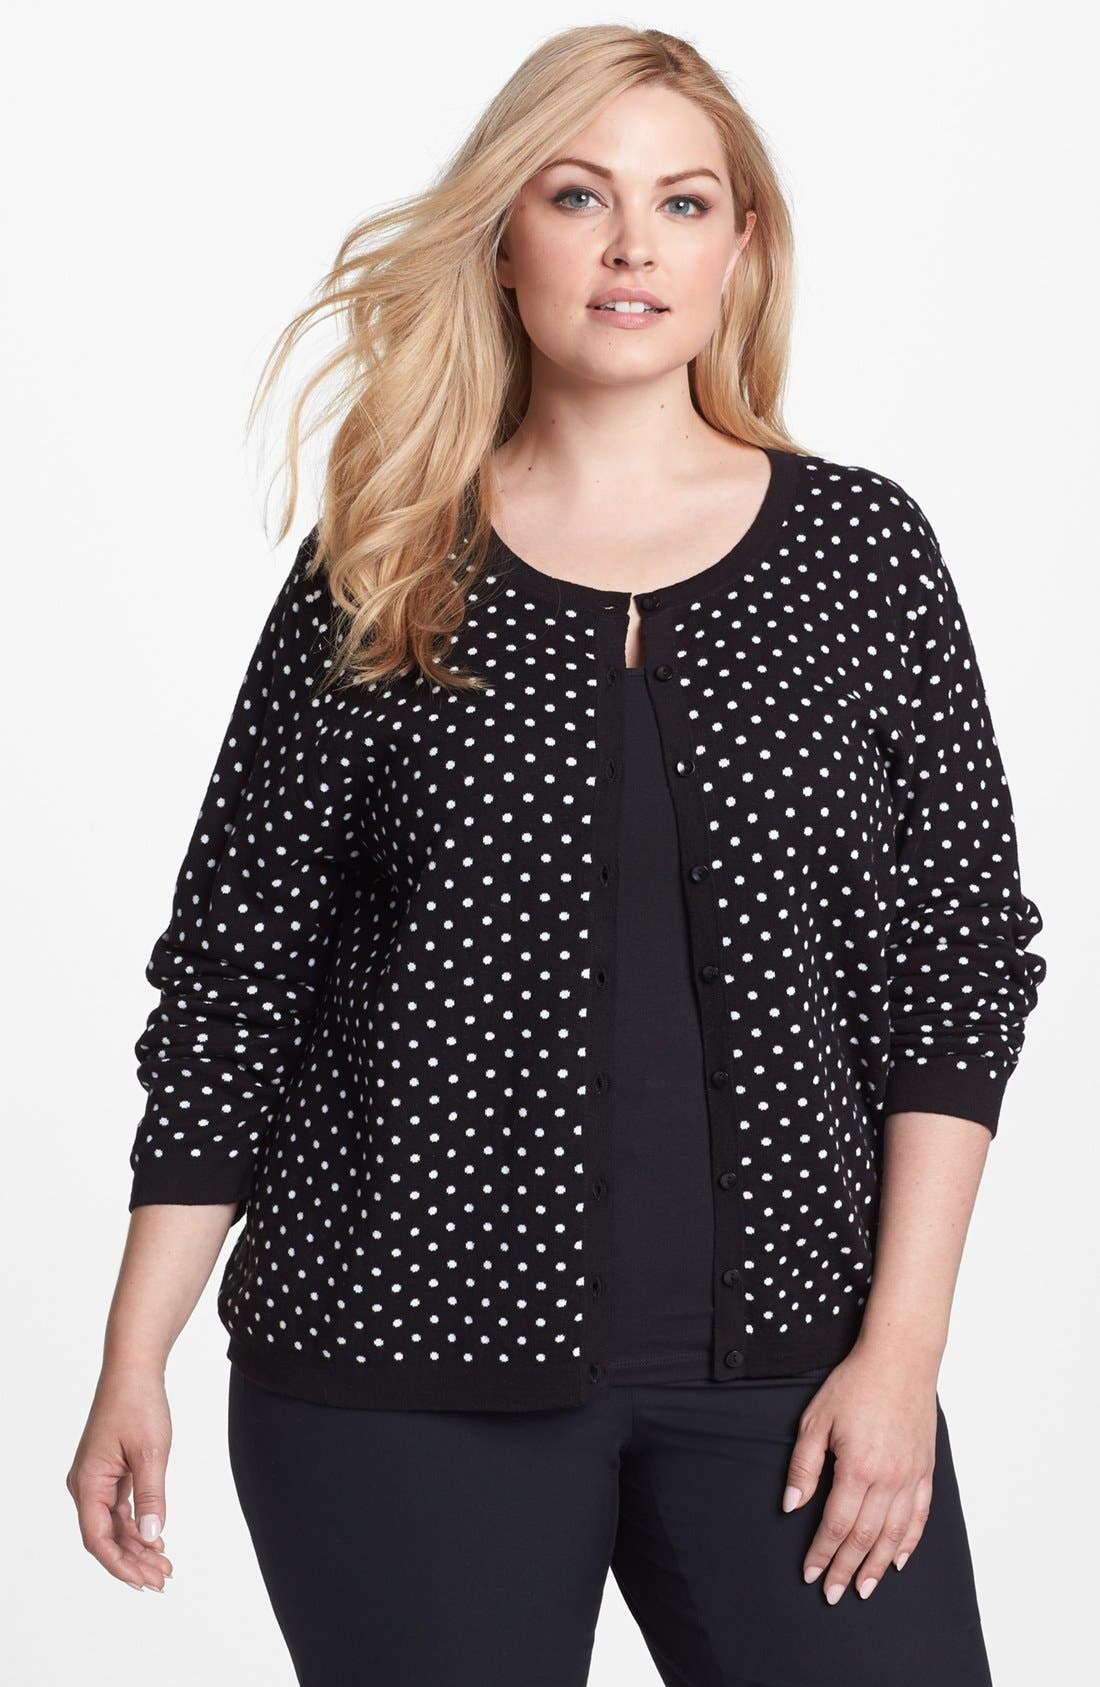 Alternate Image 1 Selected - Foxcroft Polka Dot Cardigan (Plus Size) (Online Only)